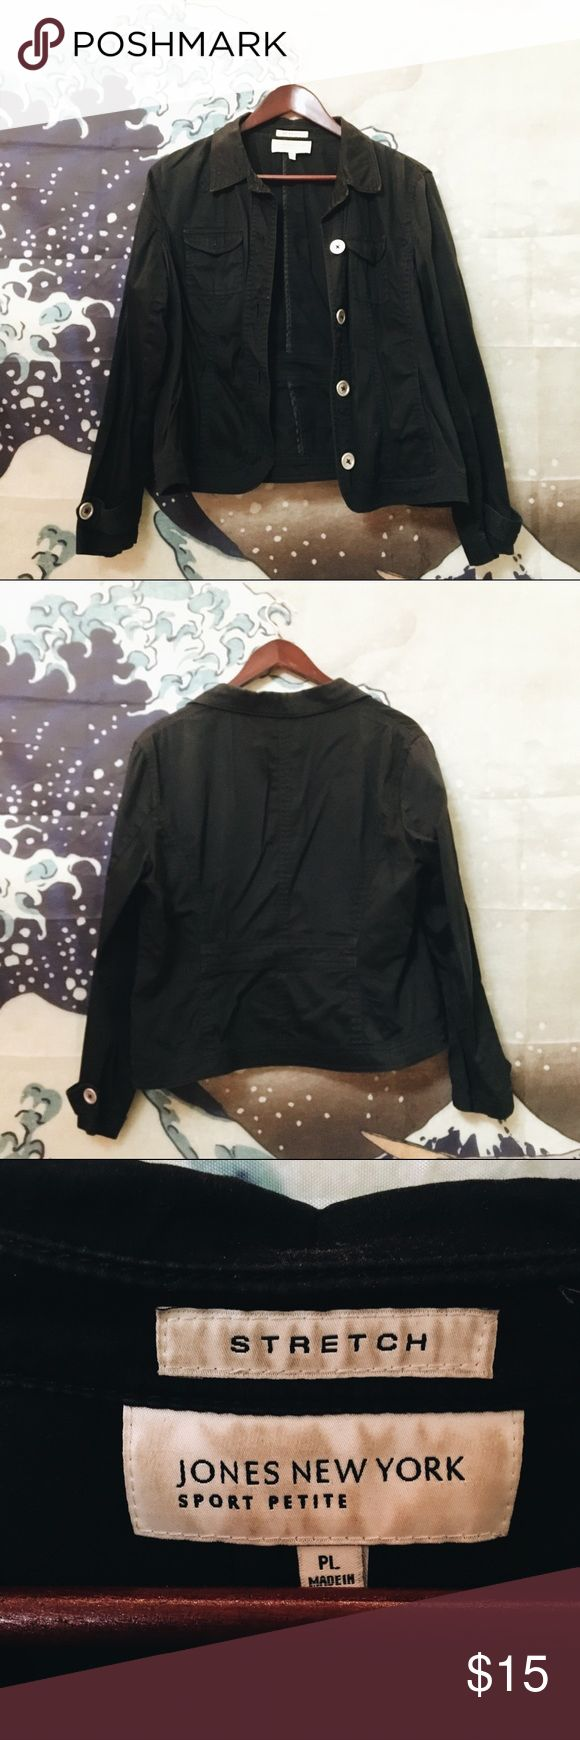 Jones New York thin black jacket Thin black jacket. Cute for the spring and summer! Great to layer with. Women's size petite L. It fits me, who is a standard size M/L. Oversized for a size S  Tag: urban outfitters, UO, forever 21, f21, h&m, gucci, asos, unif, lazy oafs, festival, dad looks, accessories, 90s, vintage, grunge, art hoe, retro, acne, men, women, American apparel, brandy melville, supreme Jones New York Jackets & Coats